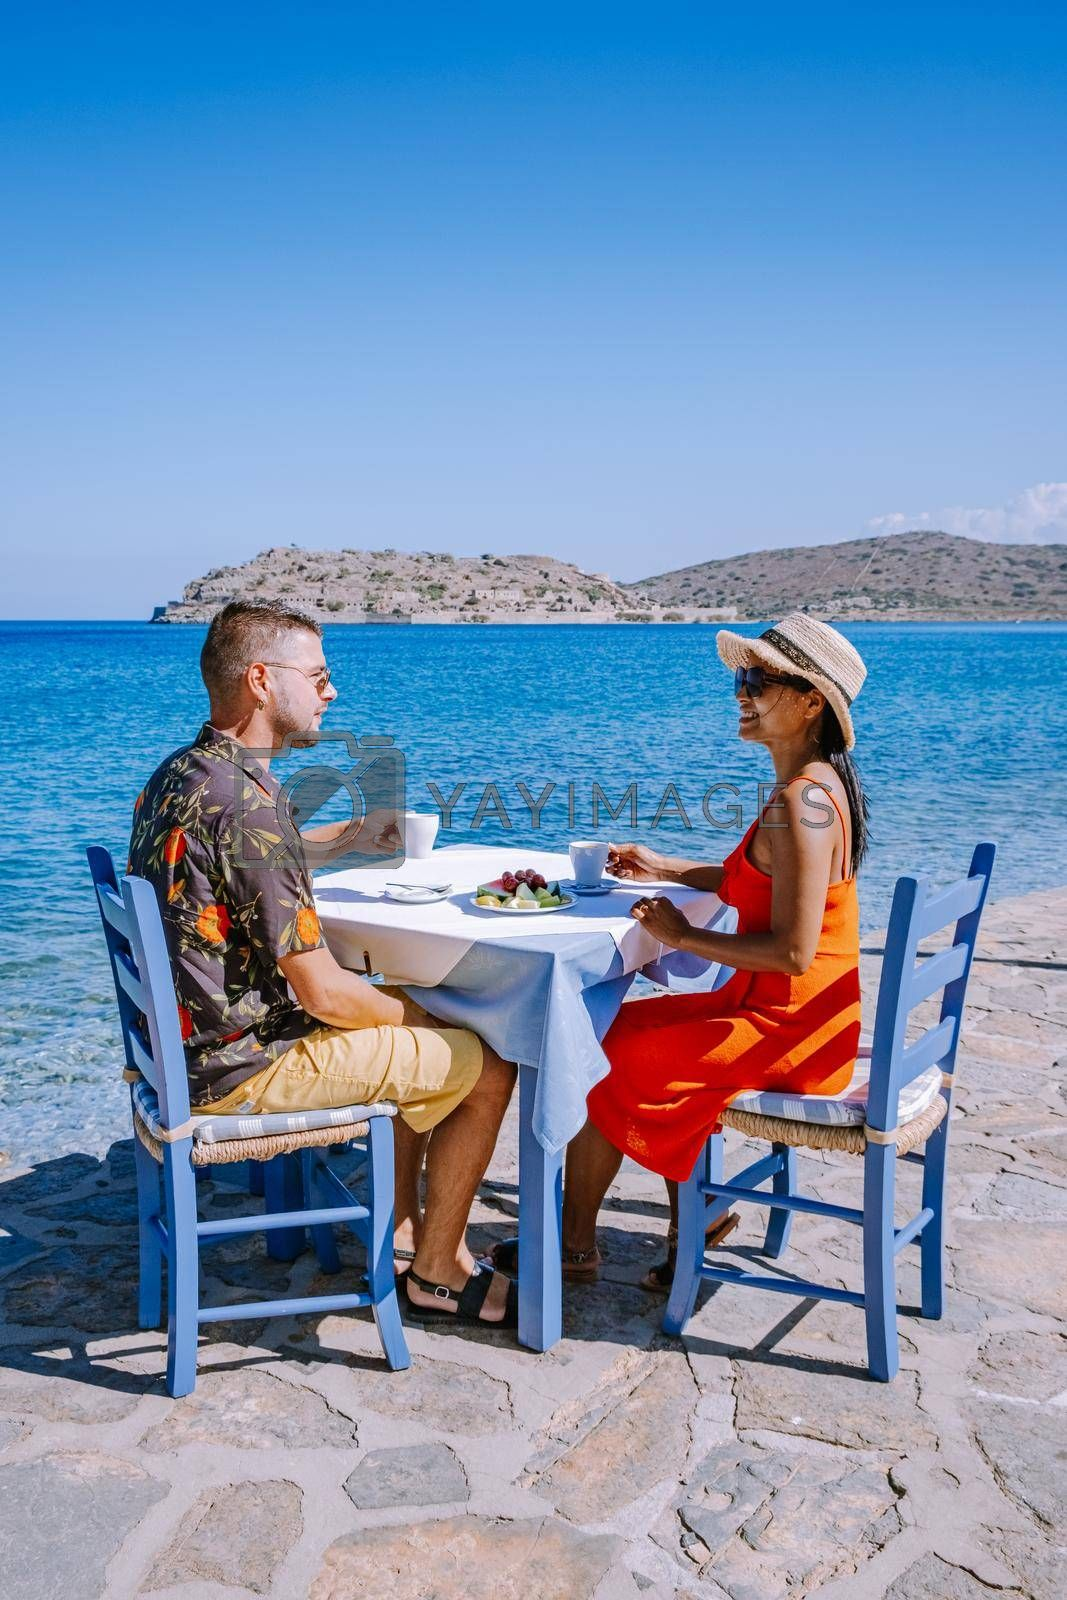 Crete Greece Plaka Lassithi with is traditional blue table and chairs and the beach in Crete Greece. Paralia Plakas, Plaka village Crete, couple on vacation holiday in Greece